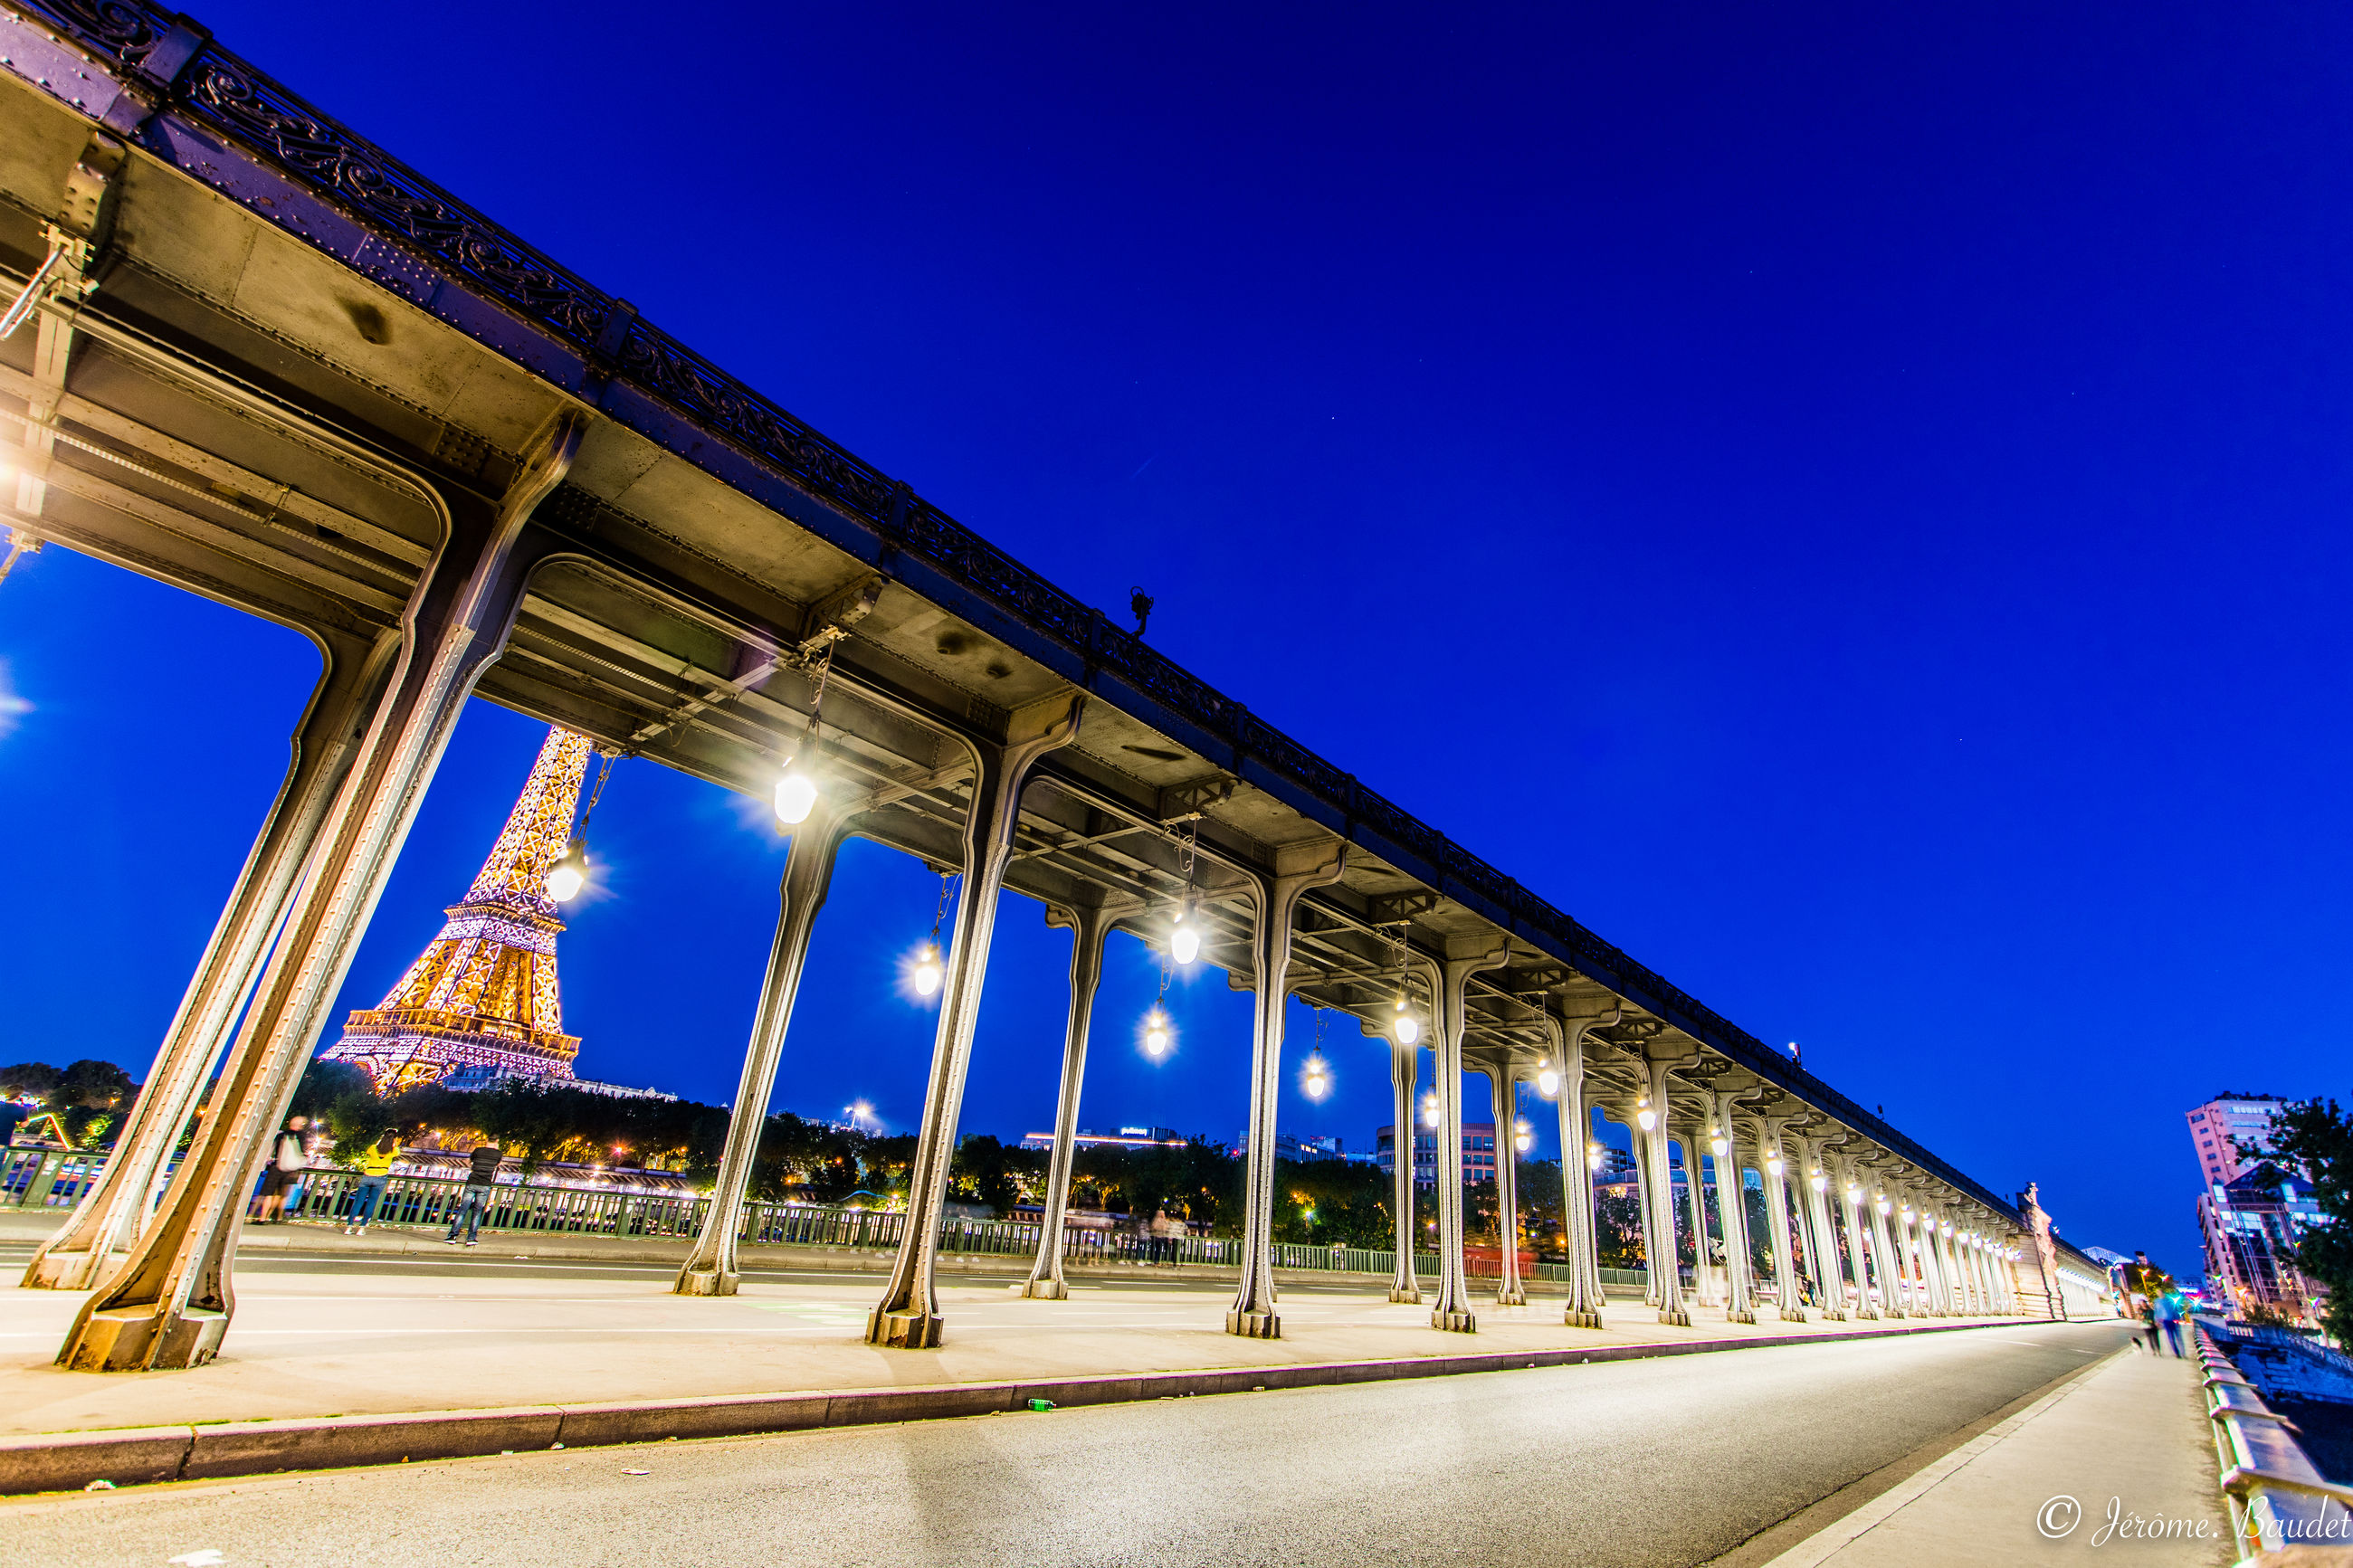 sky, blue, clear sky, built structure, architecture, transportation, road, nature, illuminated, building exterior, copy space, the way forward, outdoors, city, no people, street, architectural column, direction, day, diminishing perspective, light, long